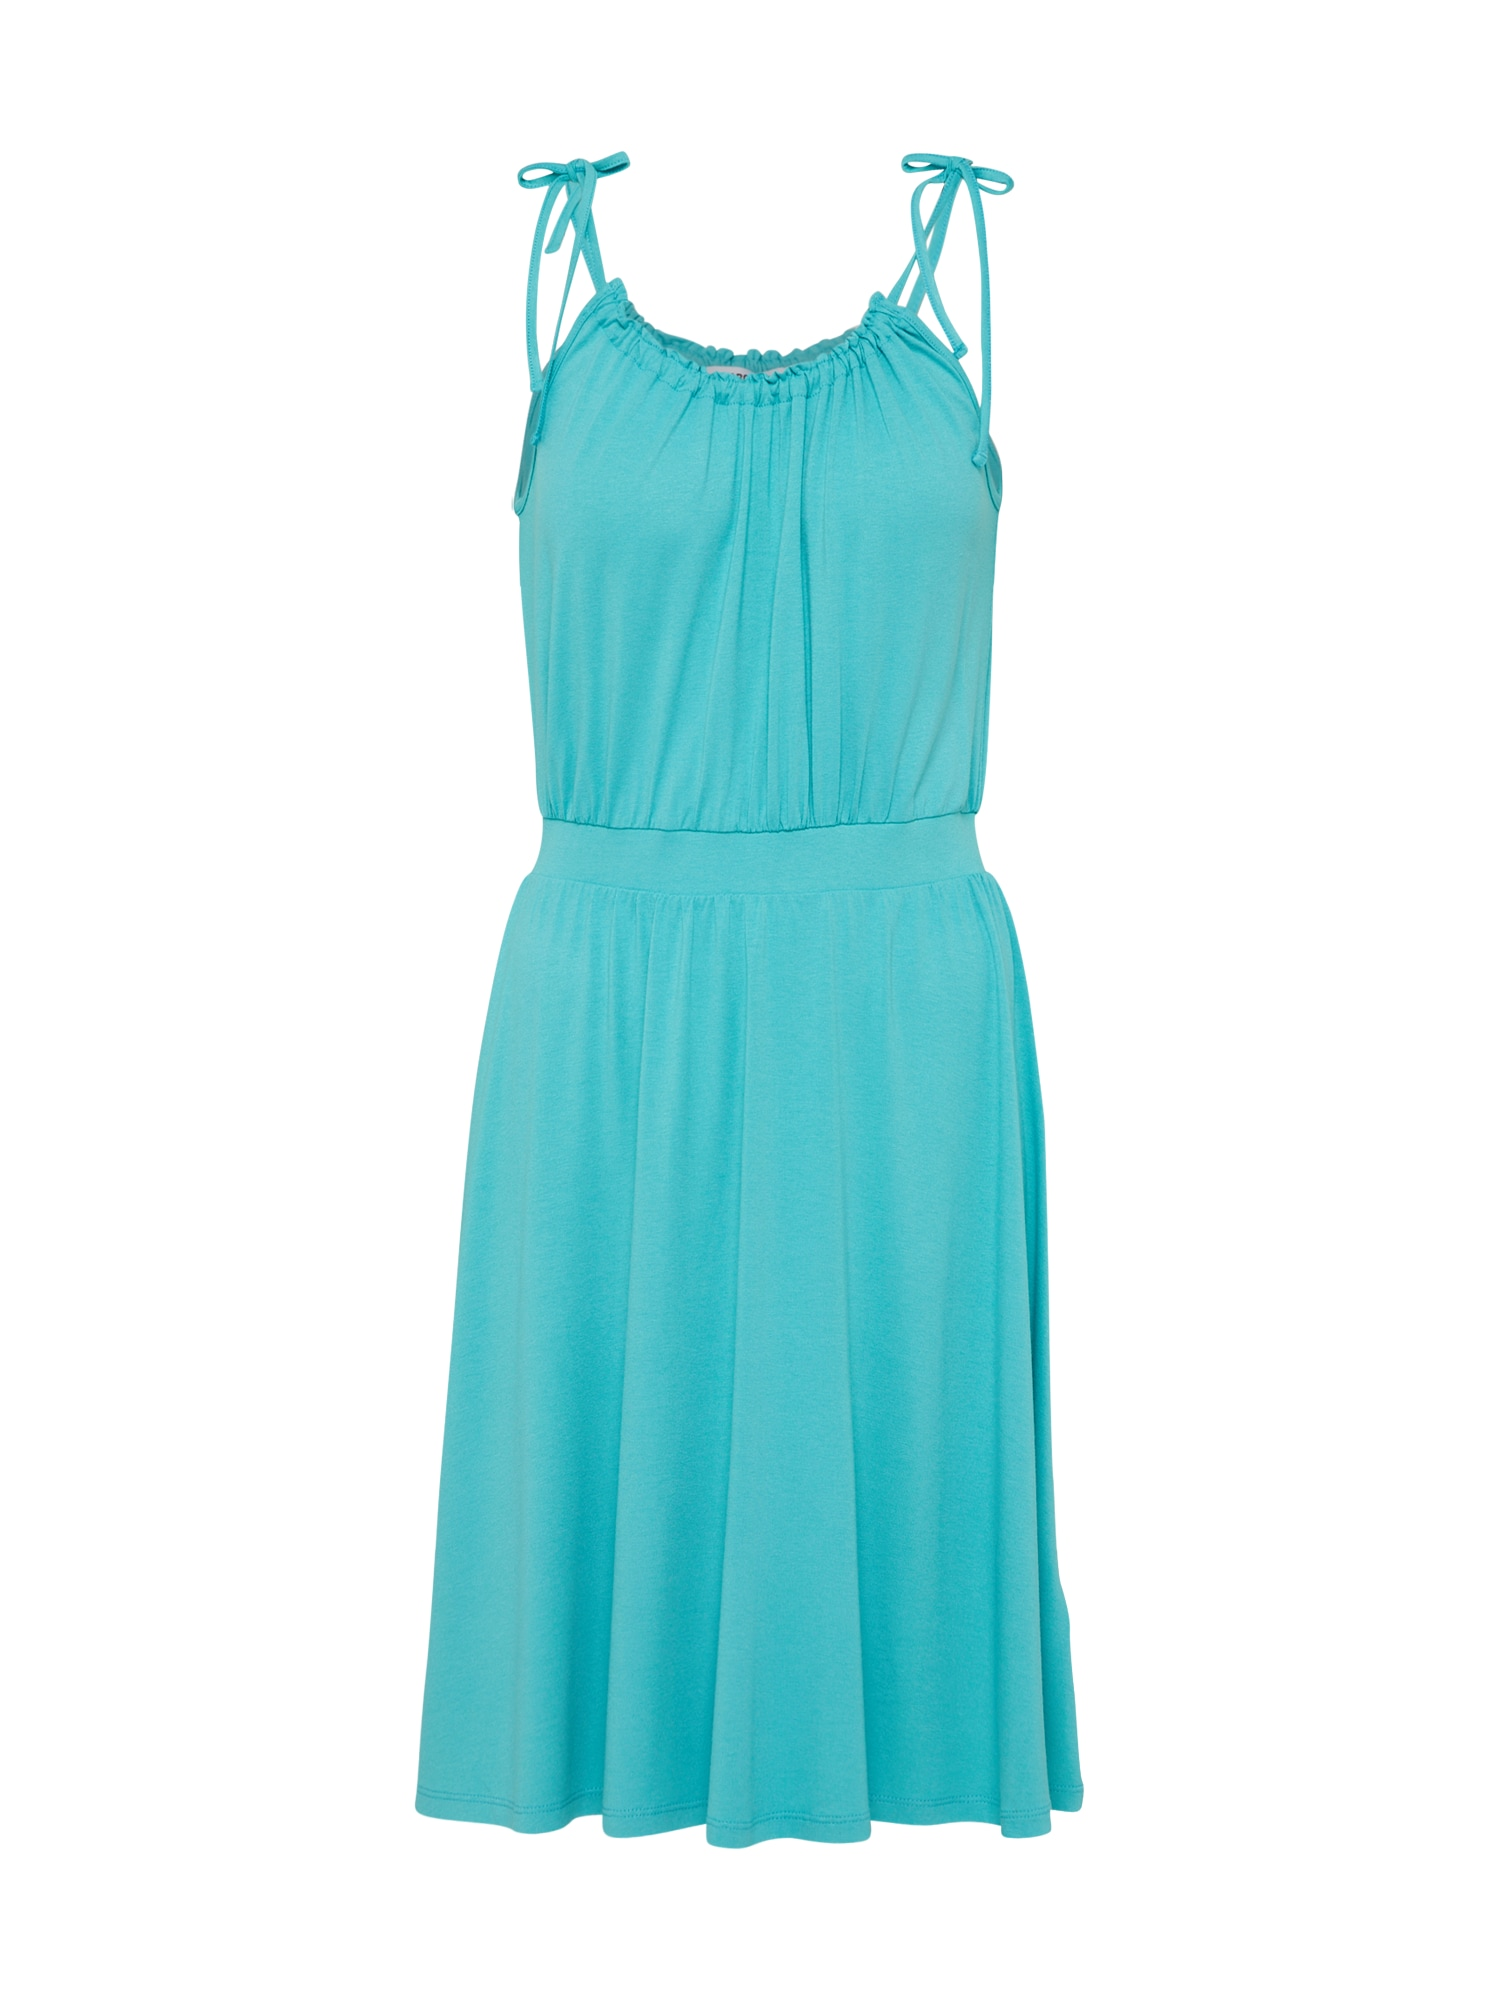 ABOUT YOU Zomerjurk 'Luana' turquoise